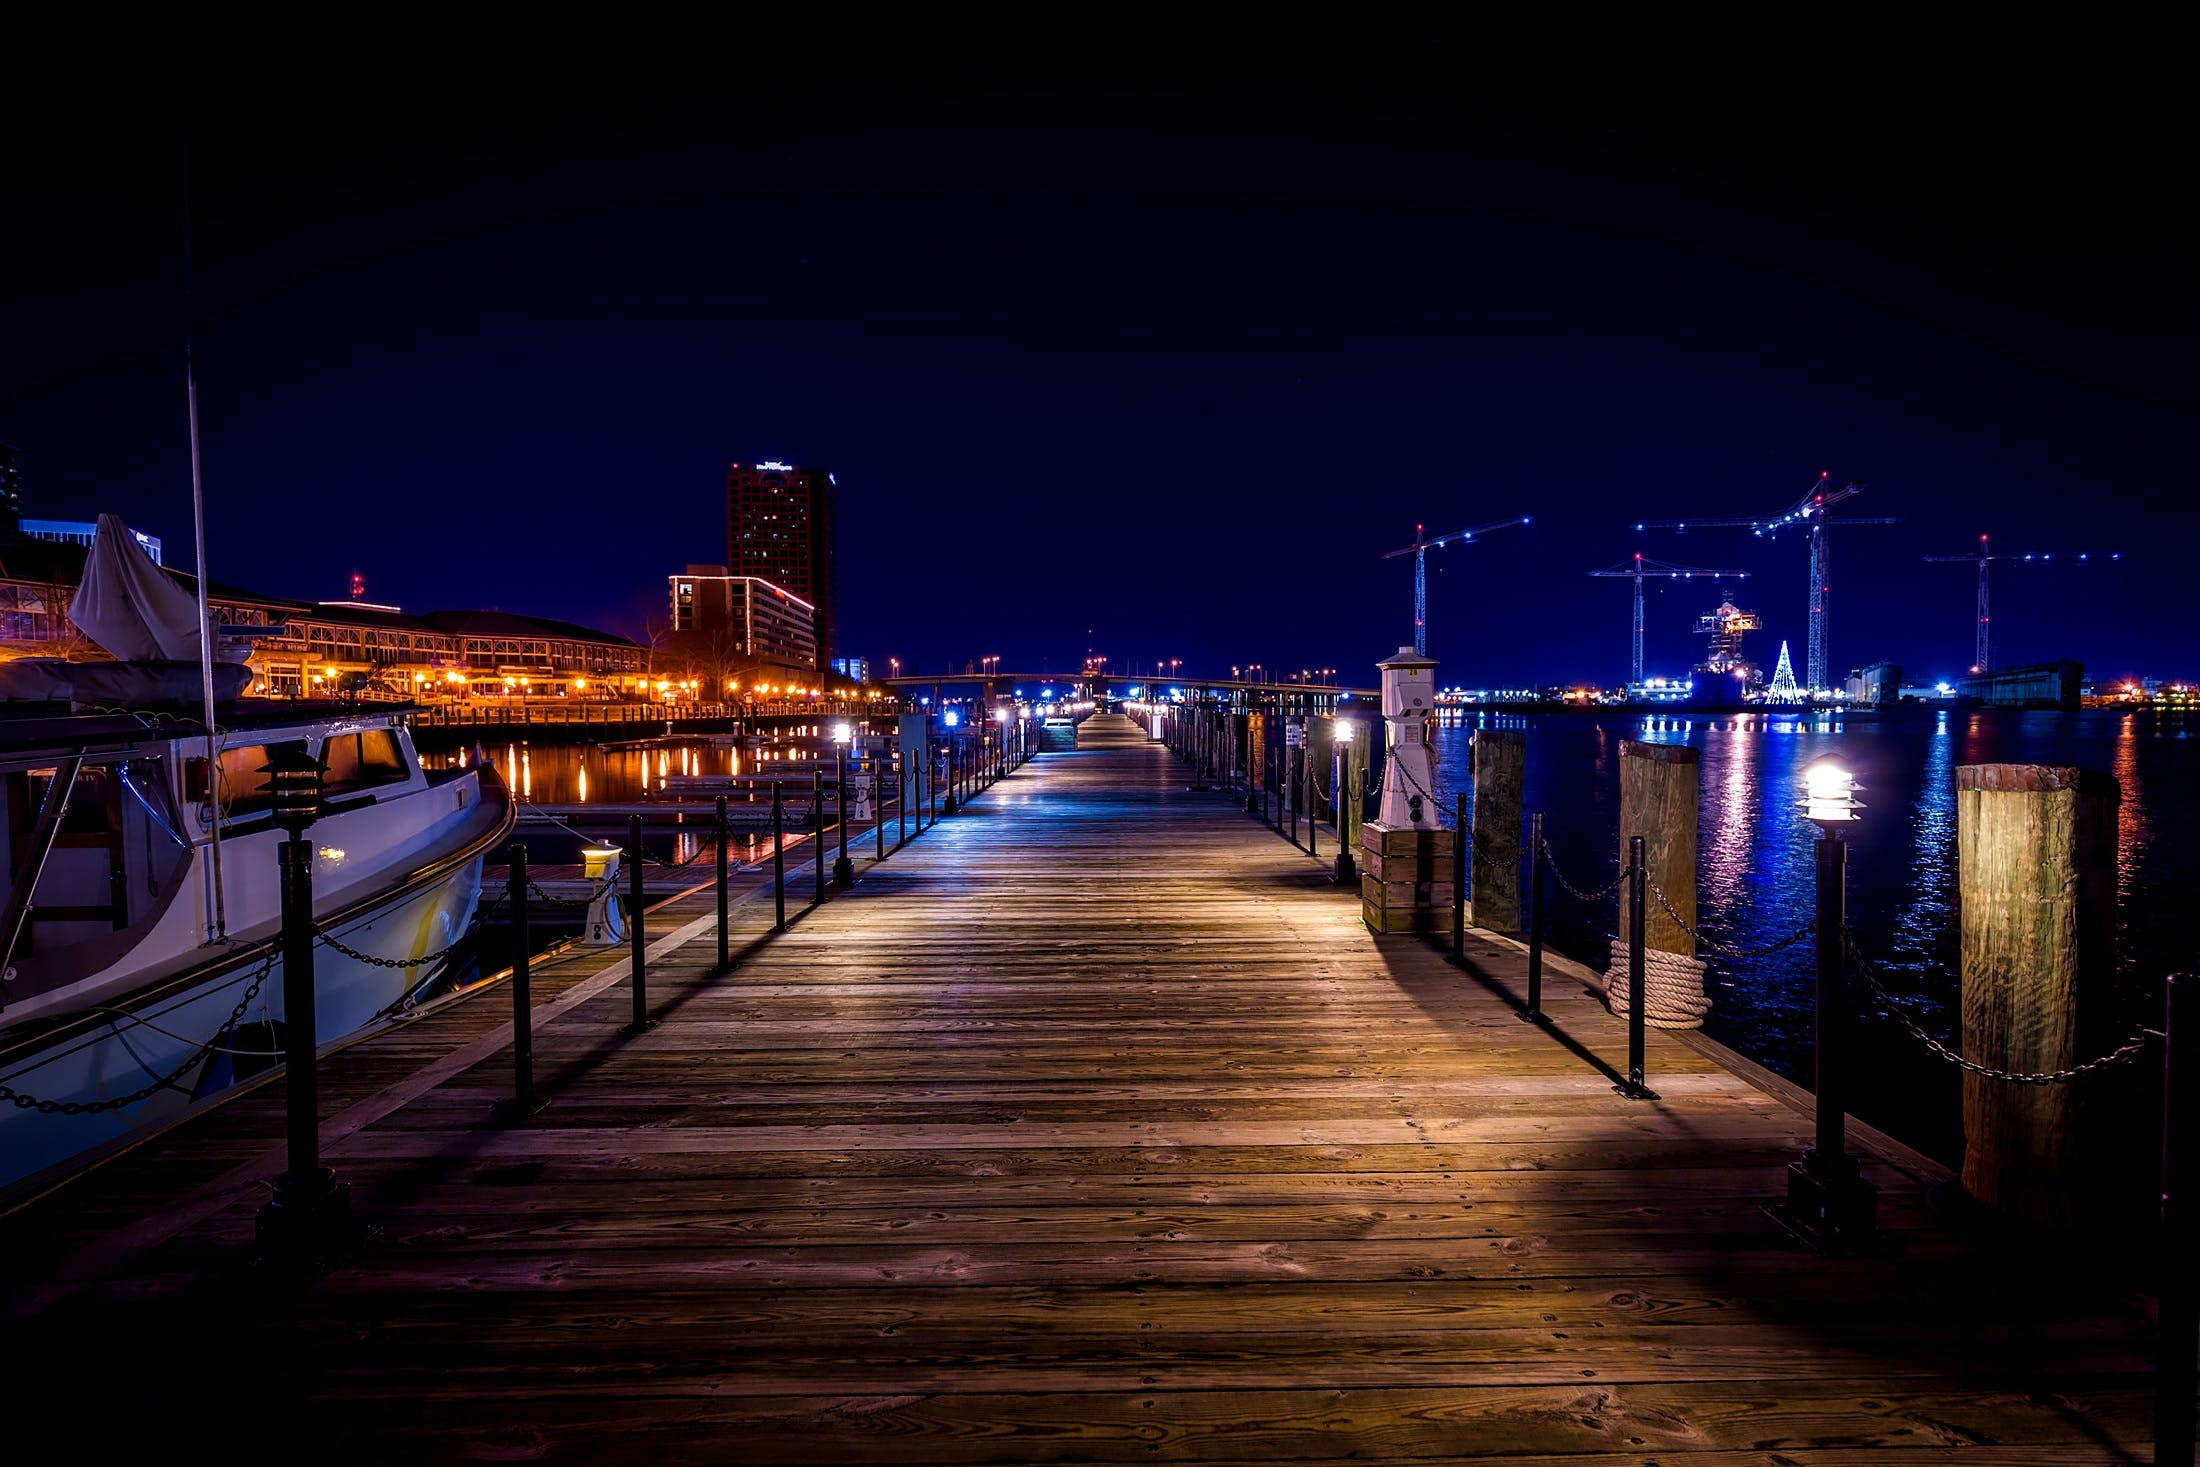 Vacant Brown Wooden Dock during Nighttime